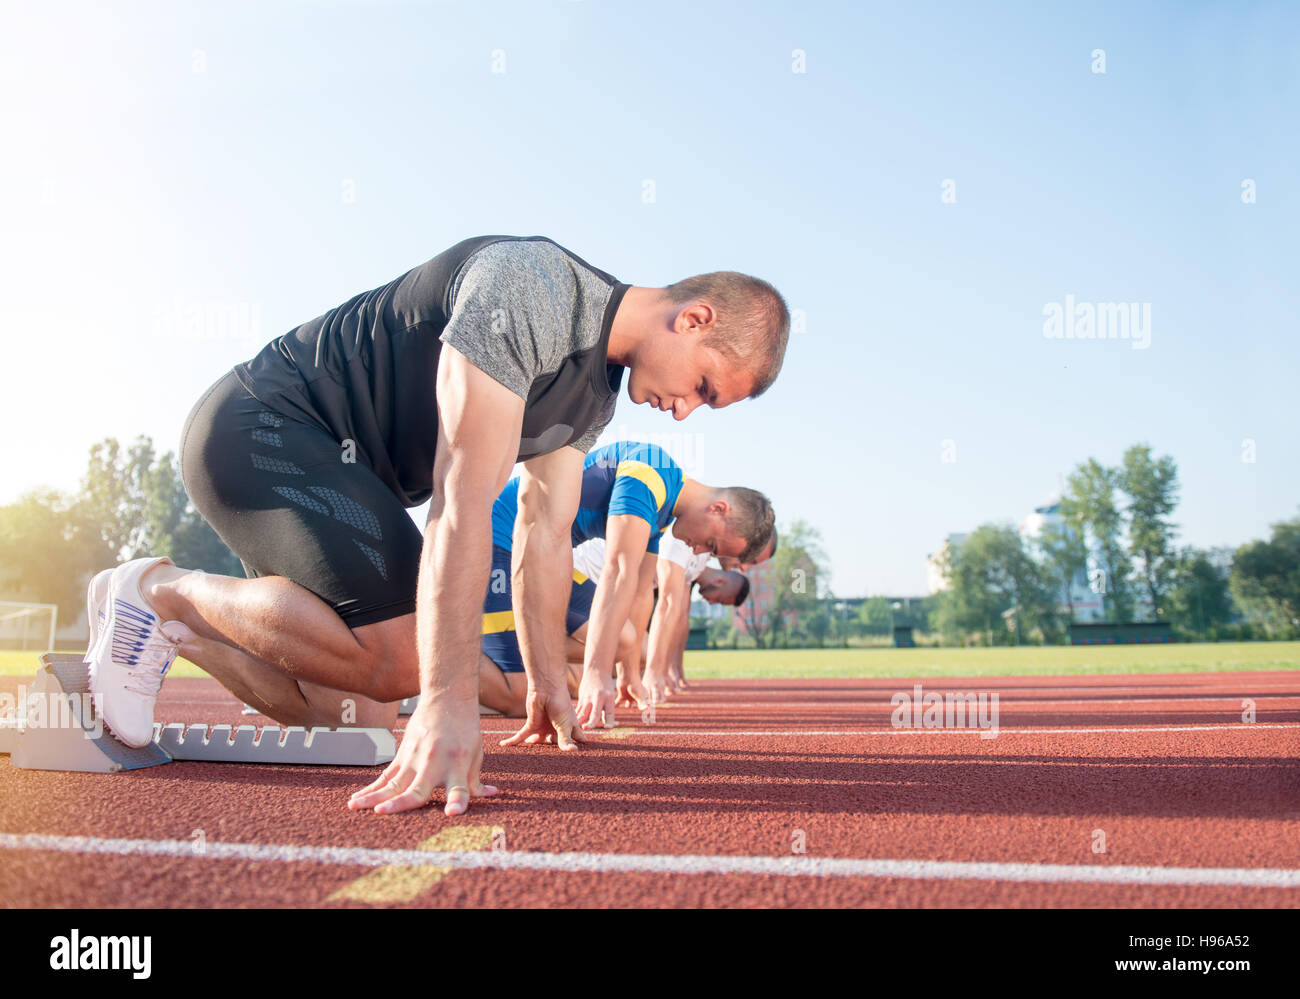 Close-up side view of cropped people ready to race on track field - Stock Image